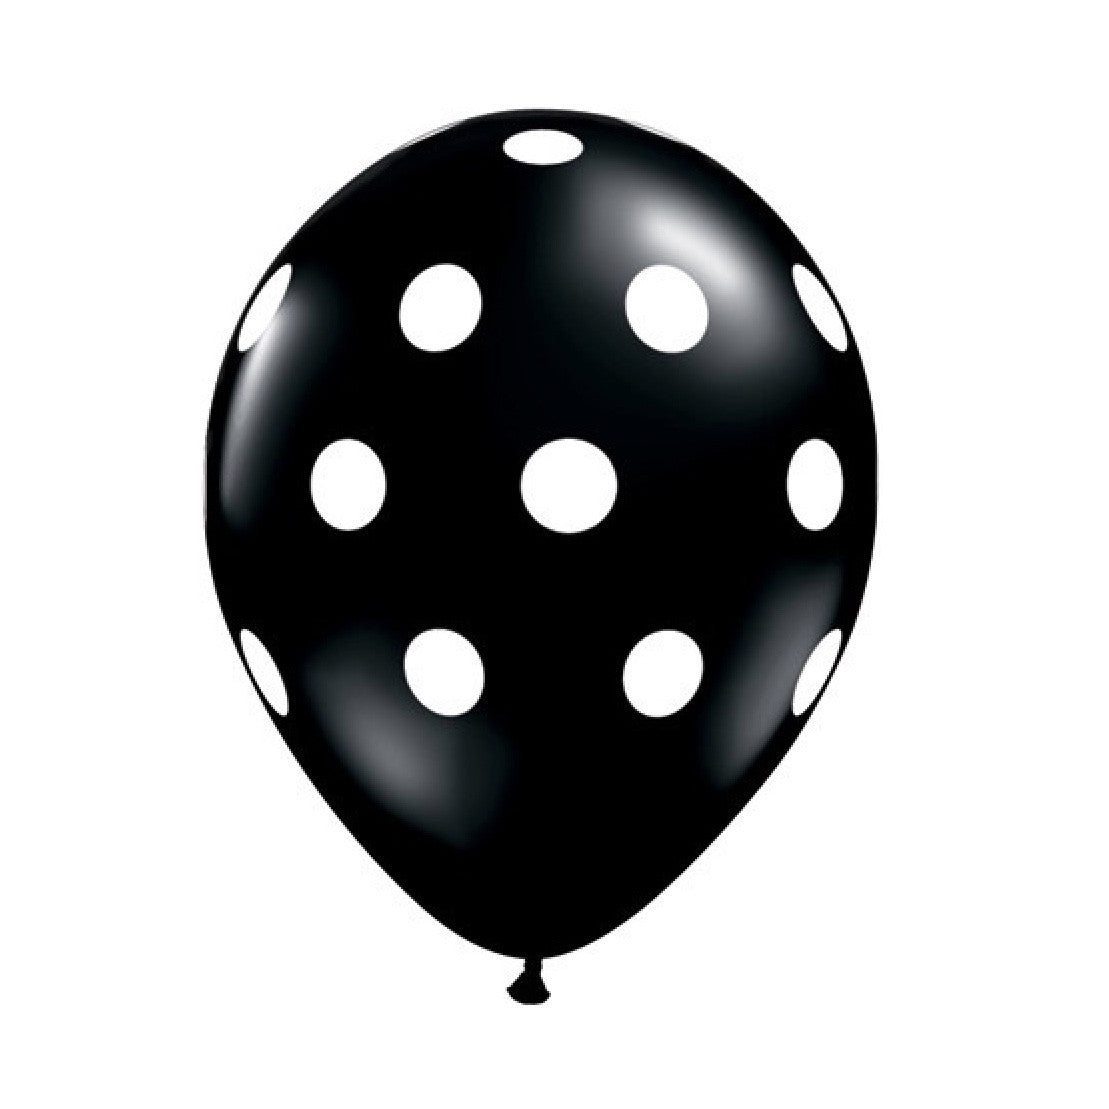 Big Polka Dots Opaque Balloons - Onyx Black, Surprize Enterprize, Putti Fine Furnishings